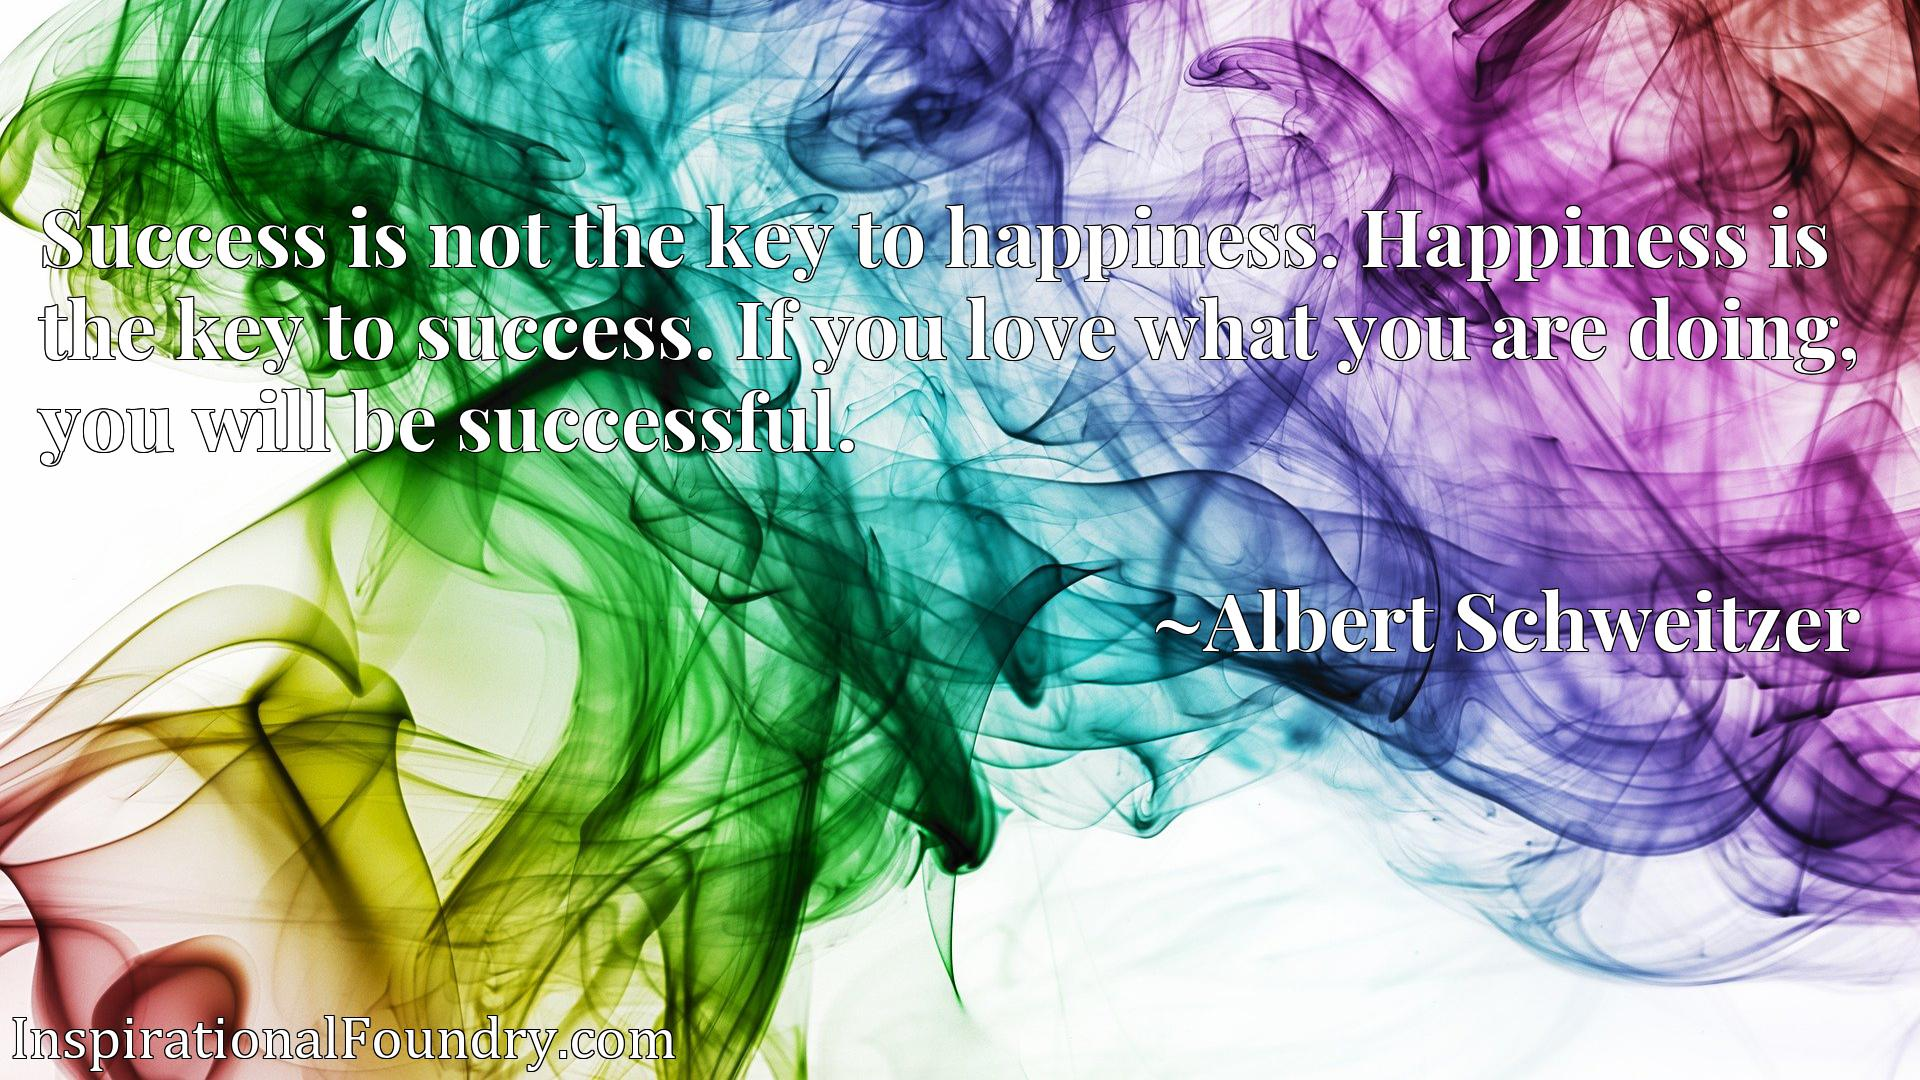 Quote Picture :Success is not the key to happiness. Happiness is the key to success. If you love what you are doing, you will be successful.